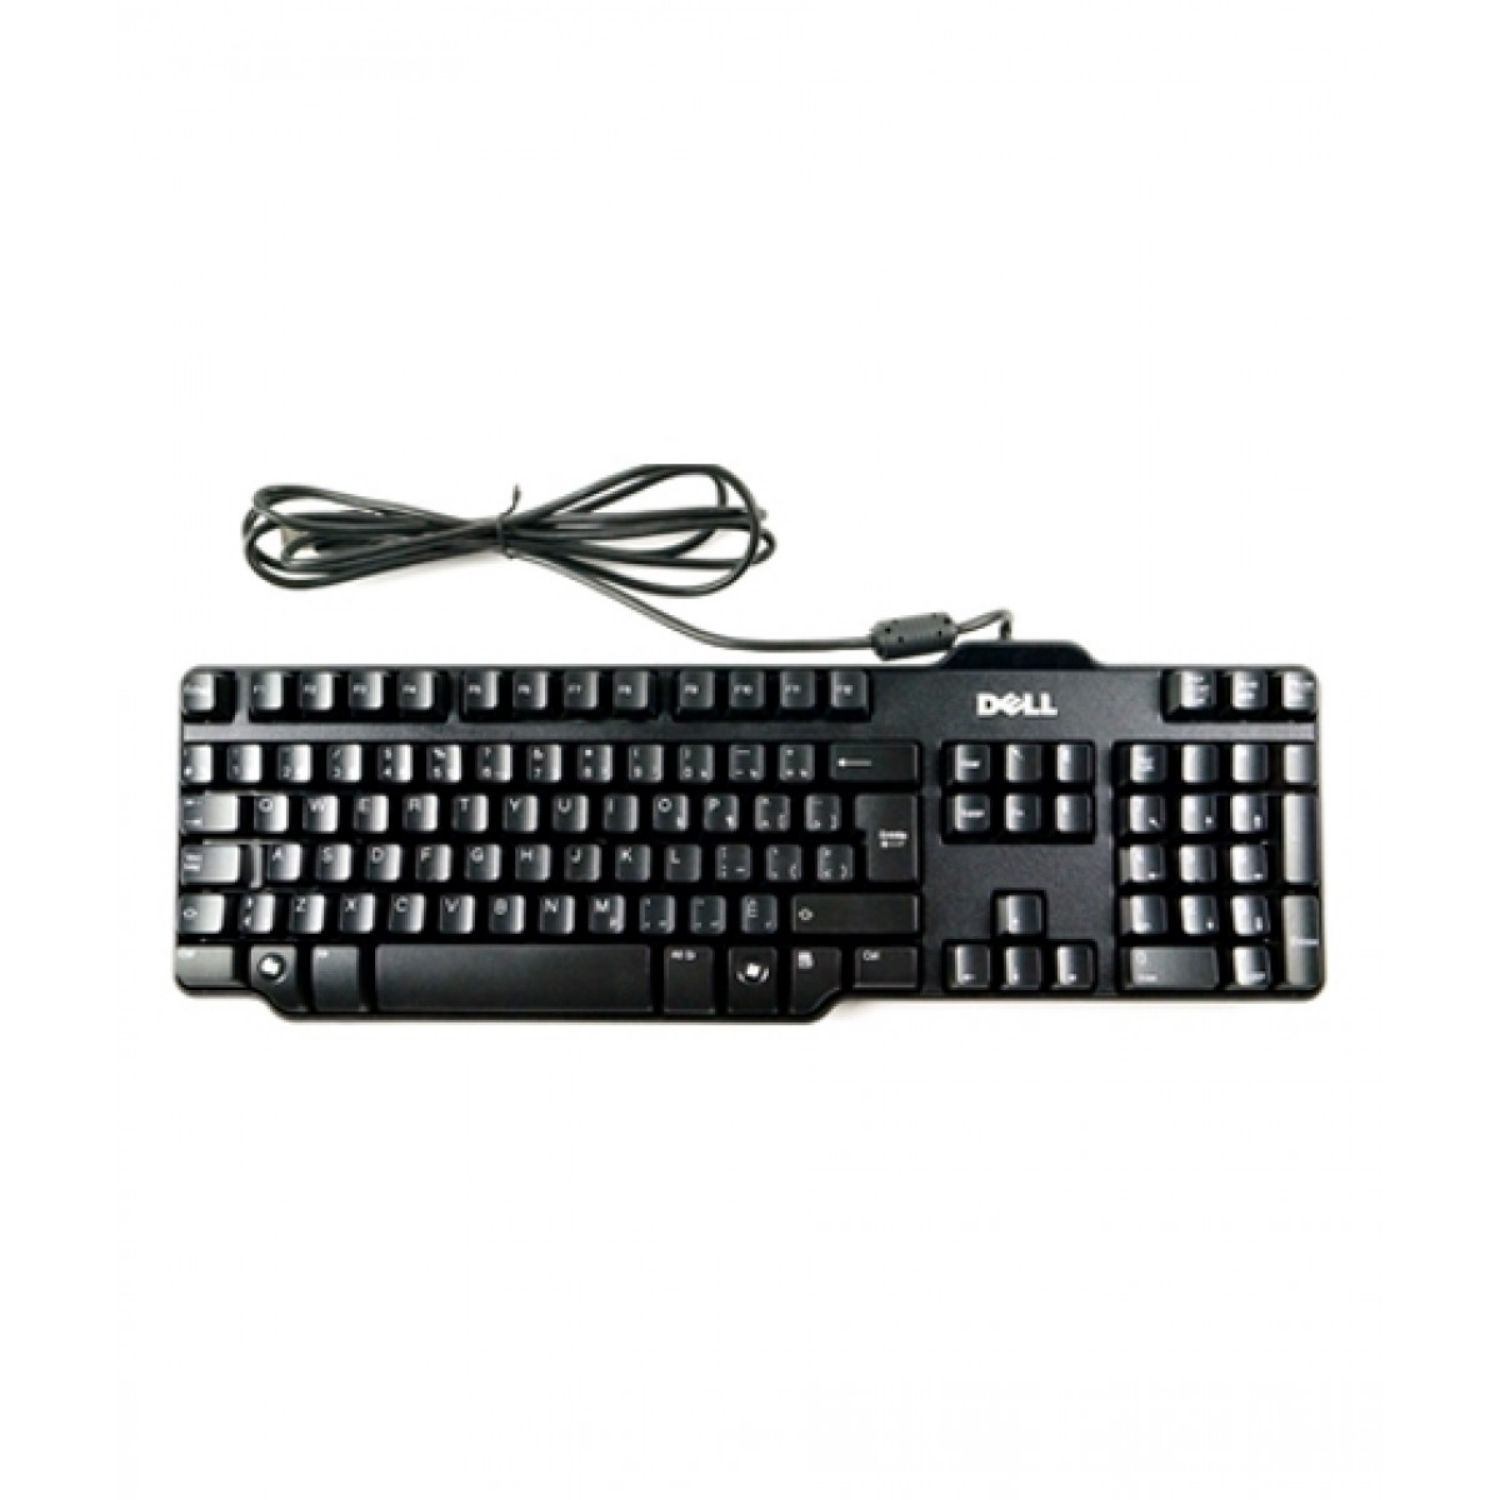 BEST QUALITY BRANDED KEYBOARD USB WIRED FOR PC LAPTOP LOT MAAL